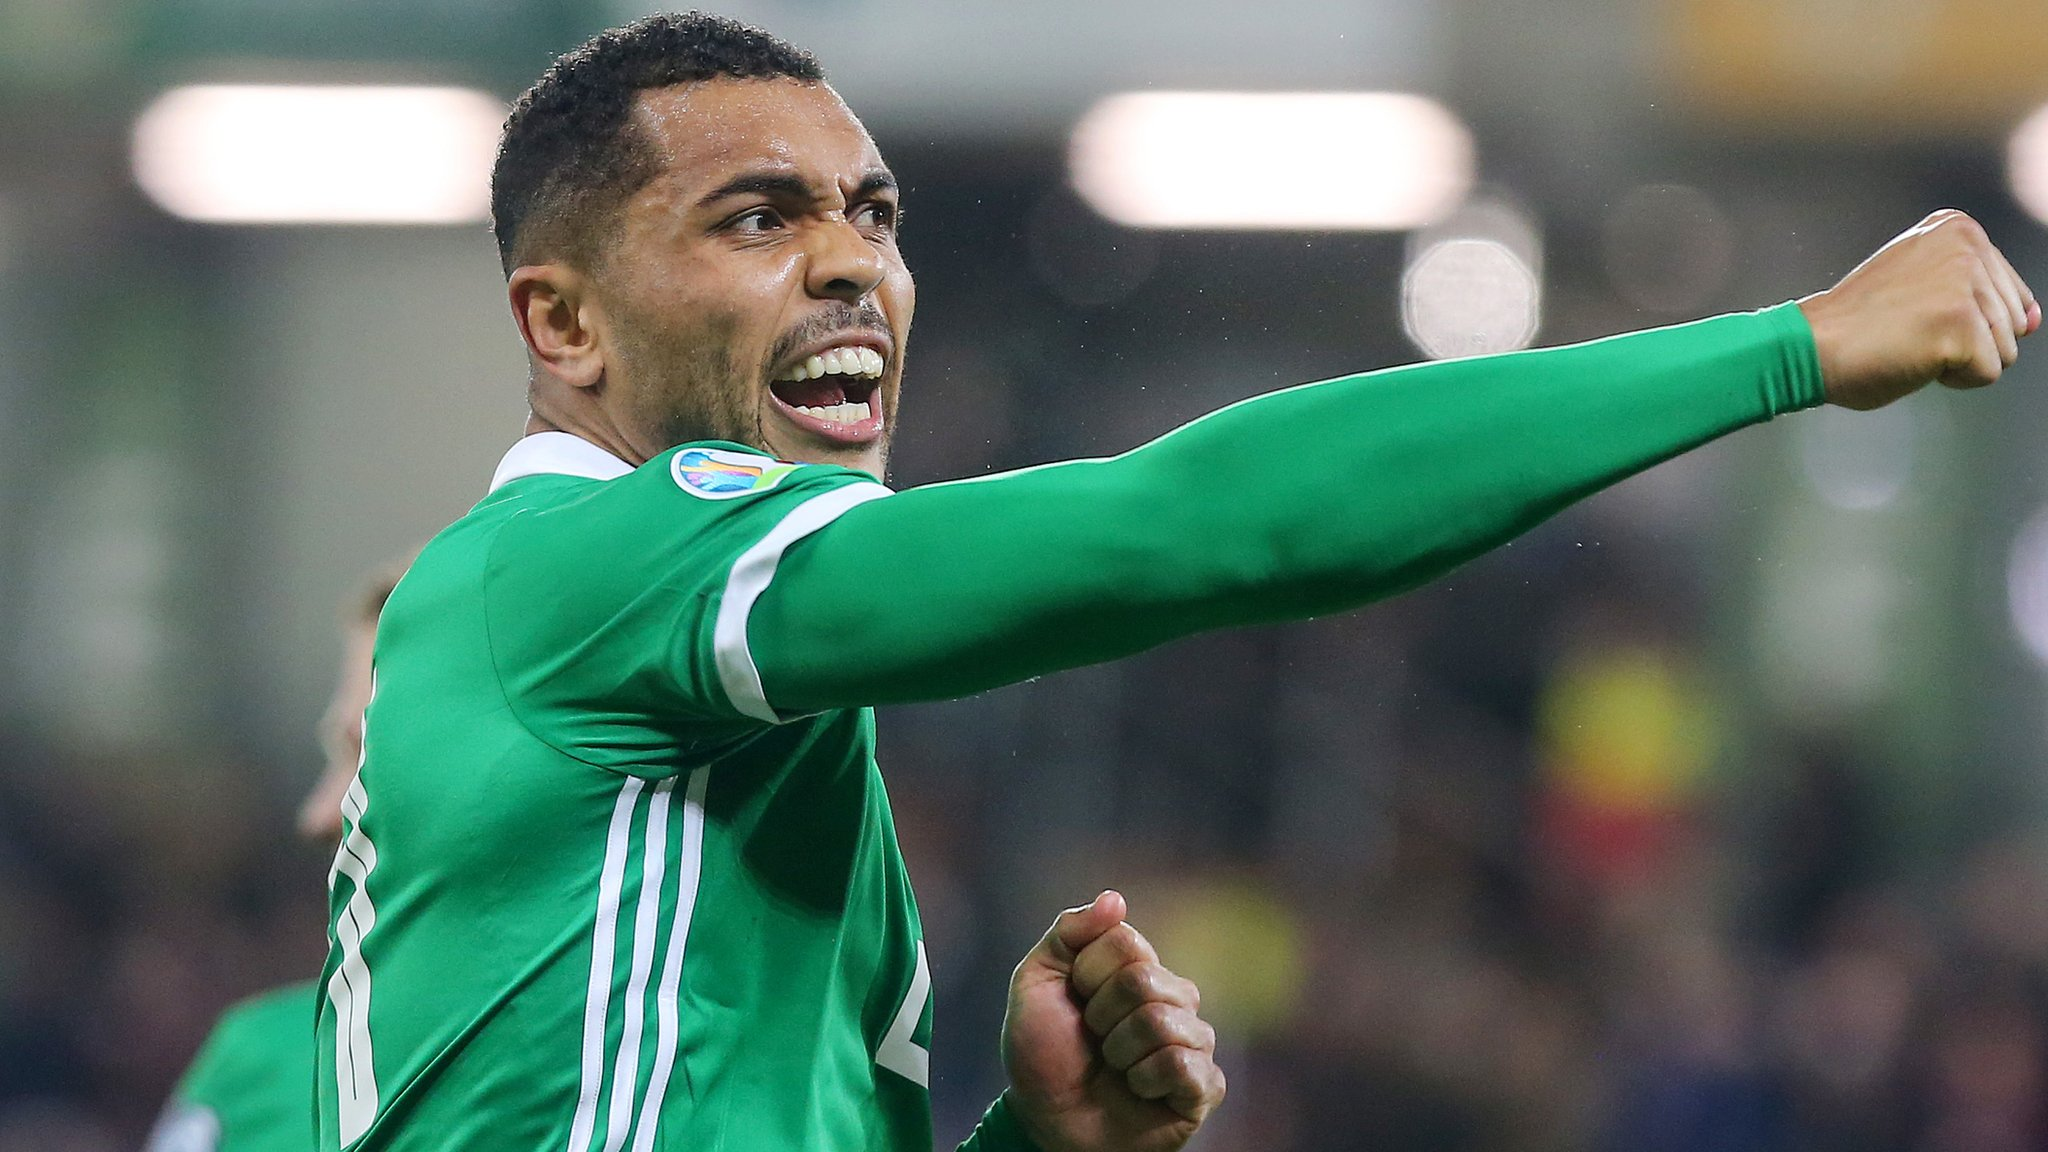 Euro 2020 qualifiers: Josh Magennis says NI can pip Germany or Dutch in group